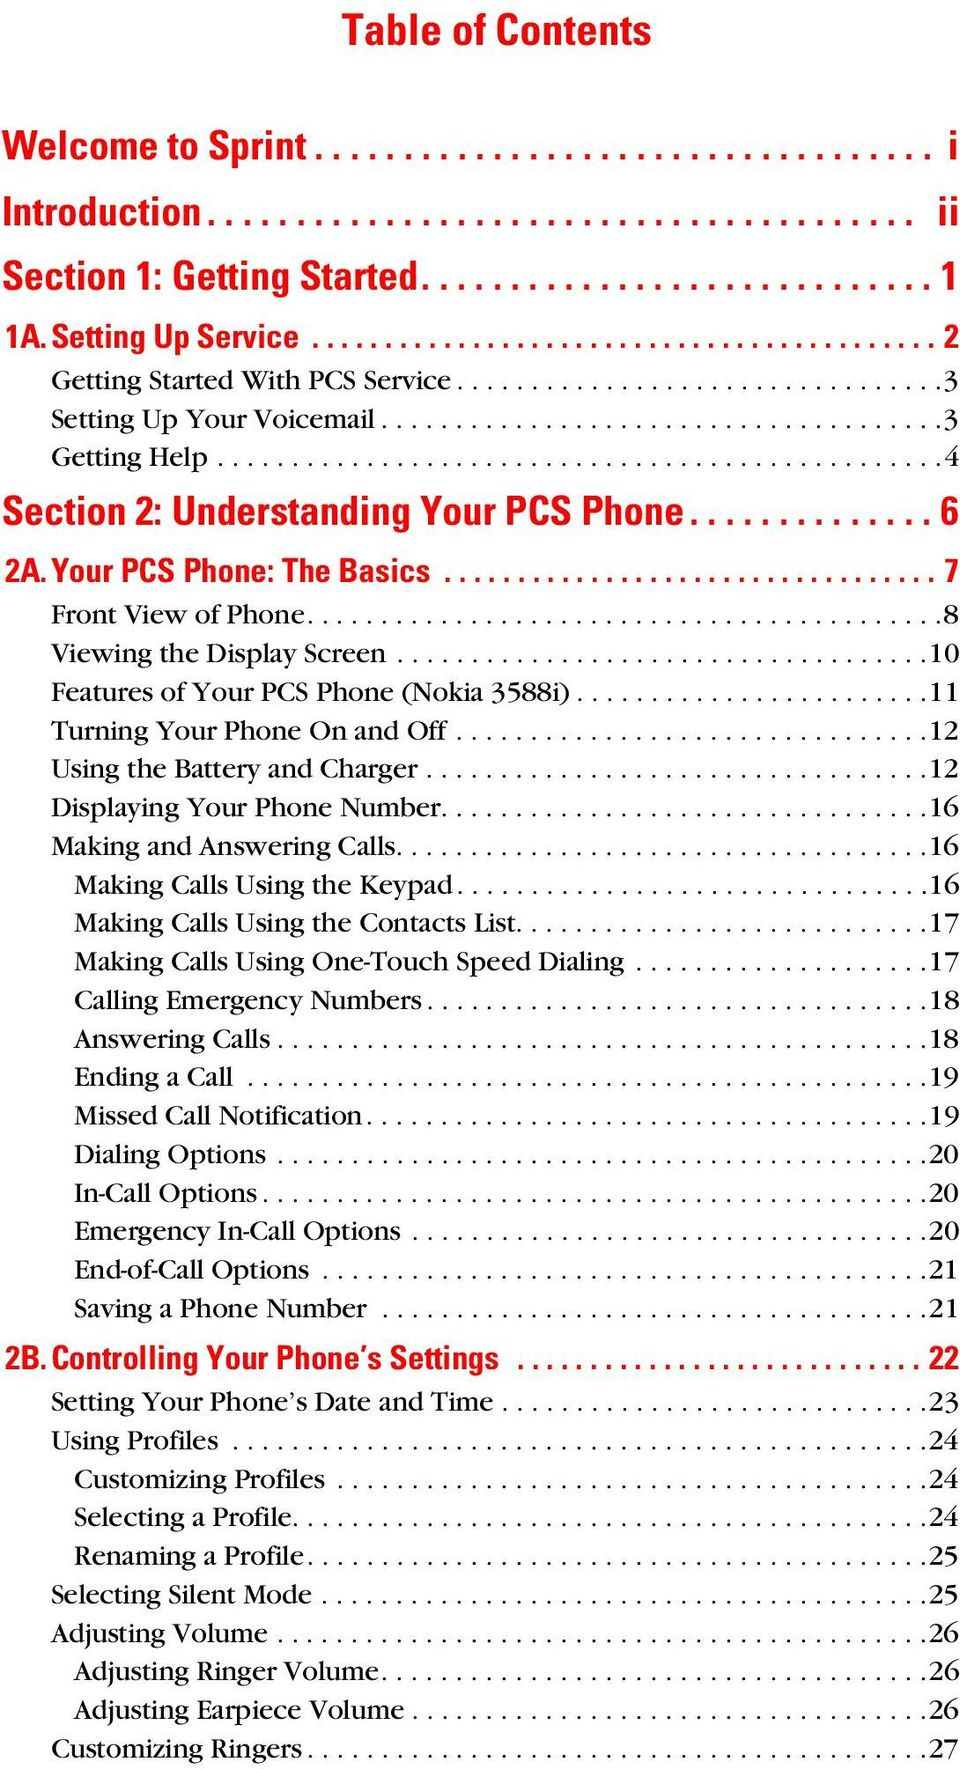 ................................................4 Section 2: Understanding Your PCS Phone.............. 6 2A.Your PCS Phone: The Basics.................................. 7 Front View of Phone.